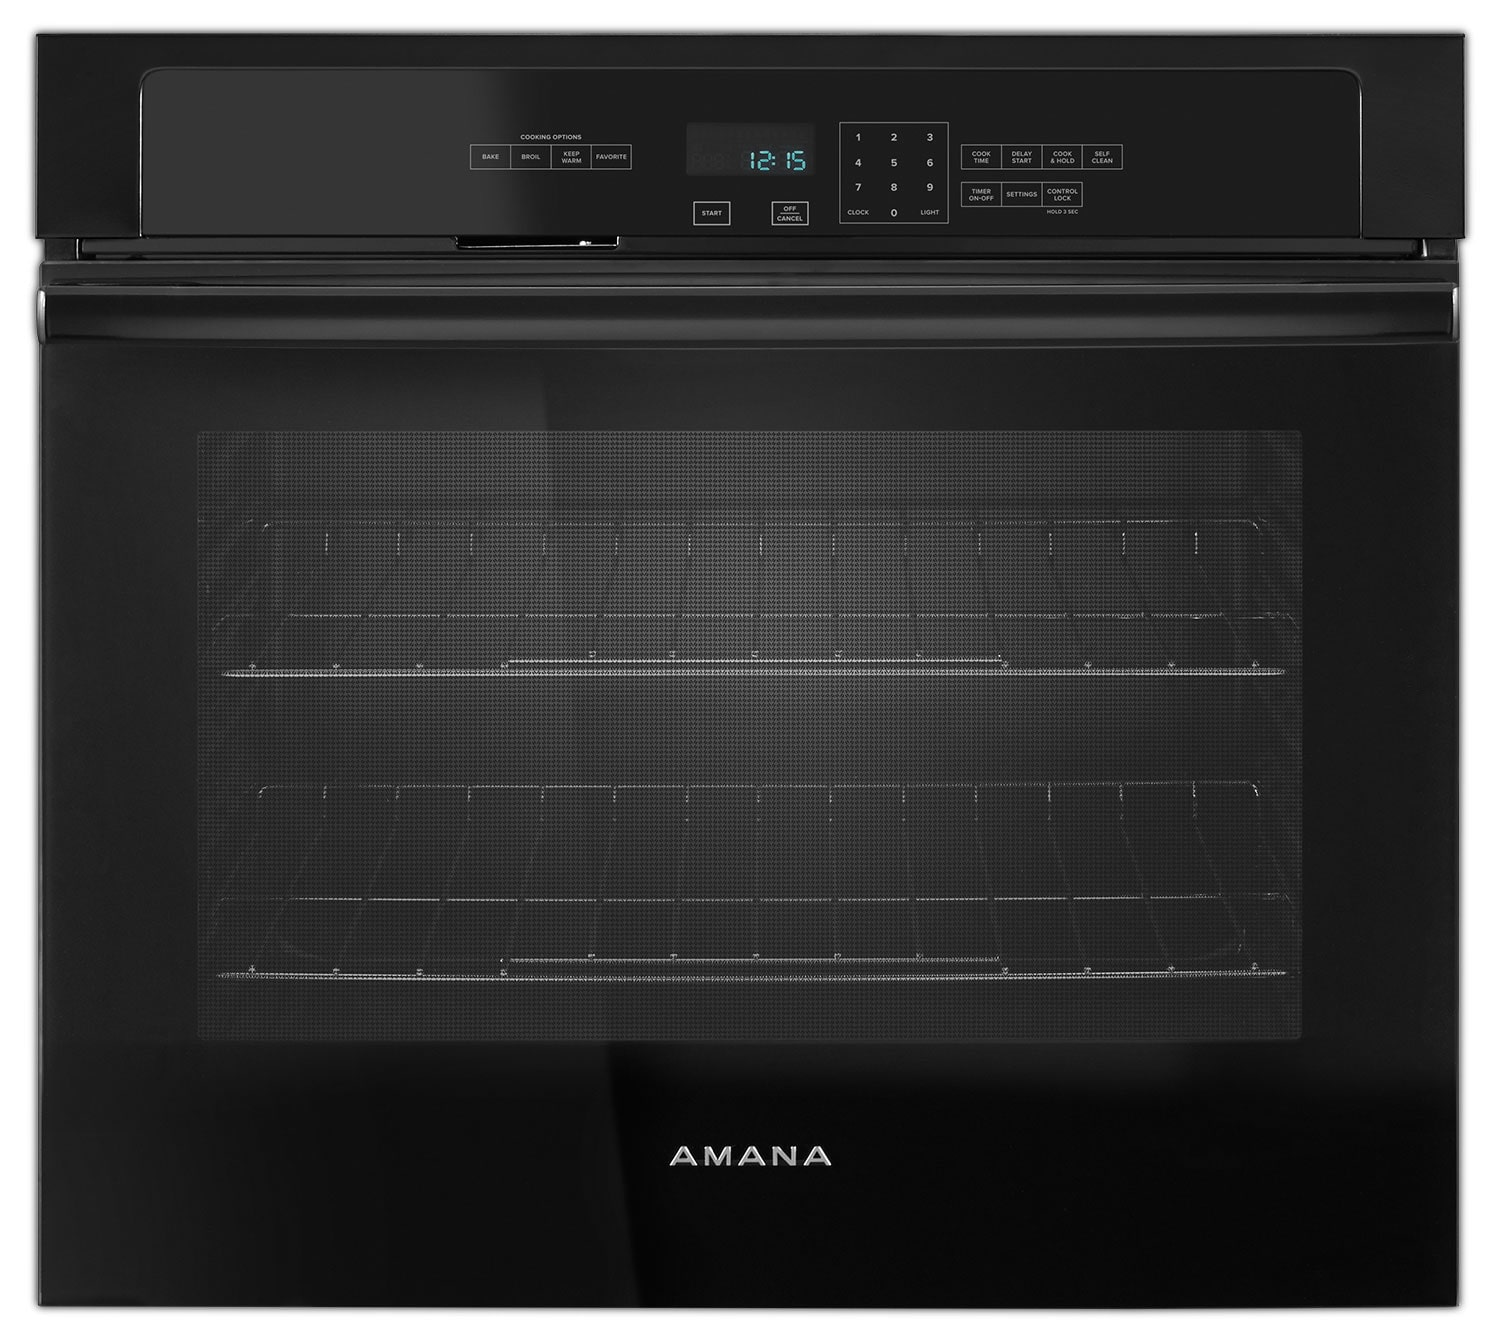 Cooking Products - Amana Black Electric Wall Oven (4.3 Cu. Ft.) - AWO6317SFB